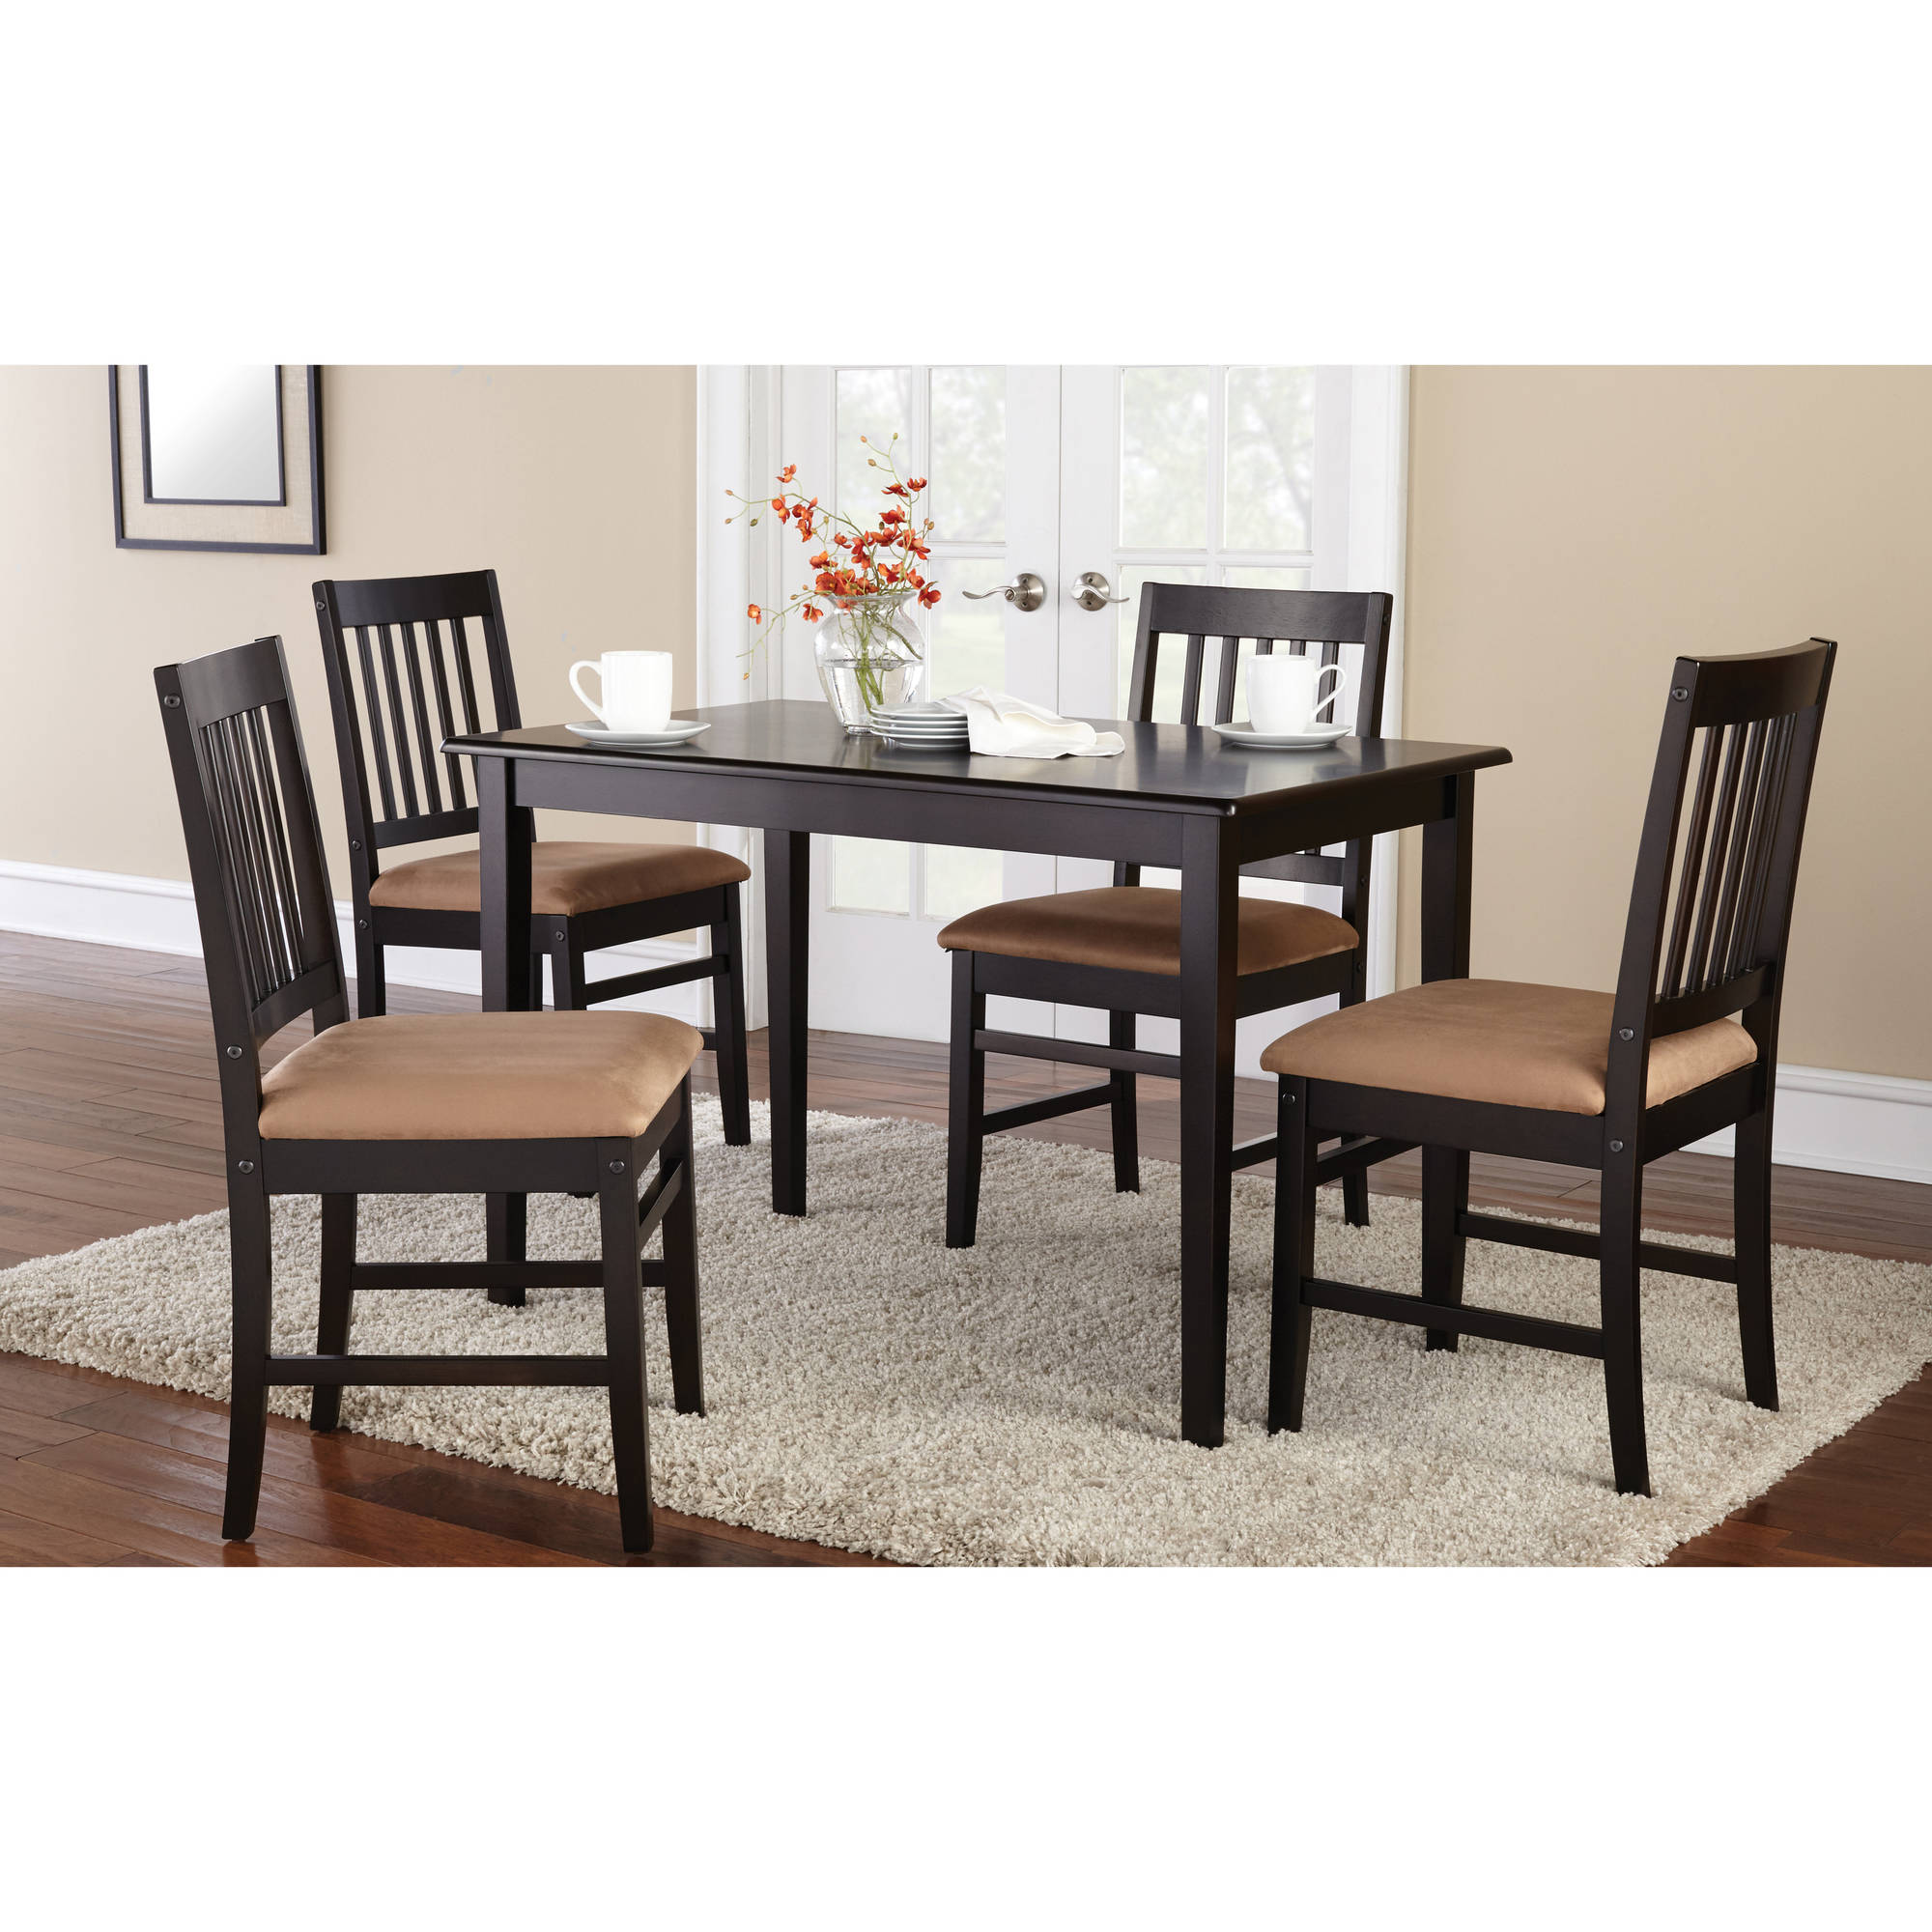 mainstays 5-piece dining set with rich espresso finish - walmart